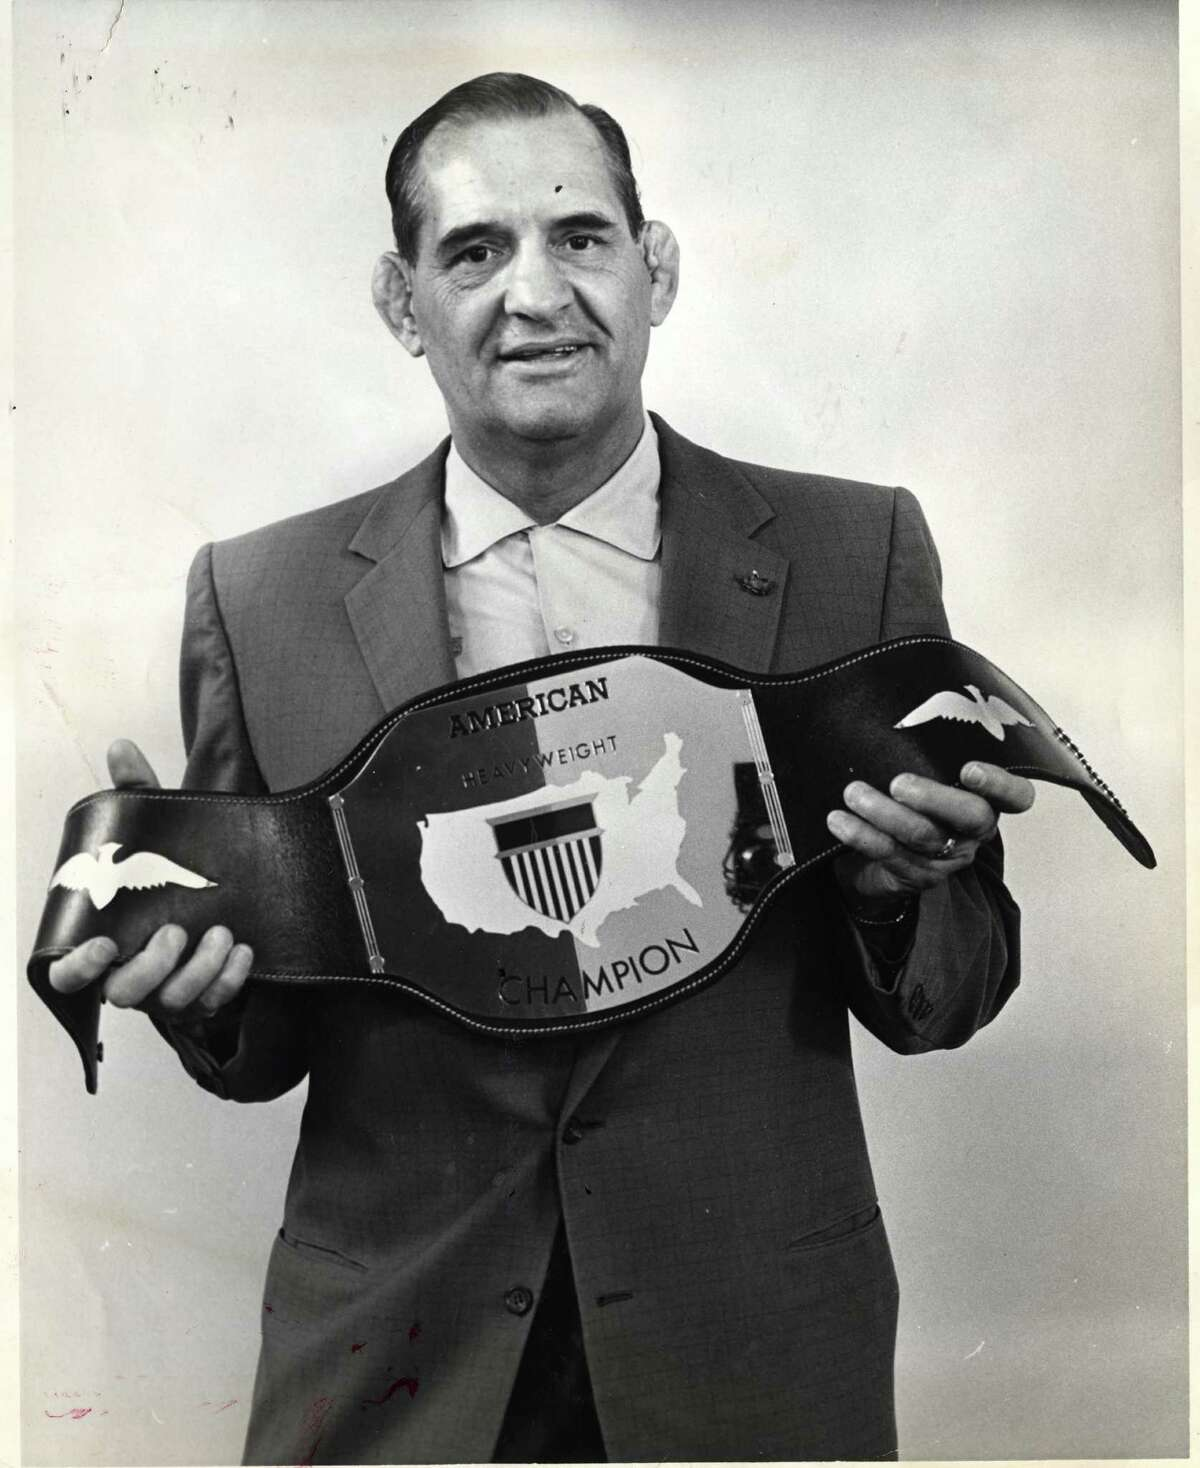 In 1962, Paul Boesch holds a wrestling title belt with American Heavyweight Champion on the buckle.